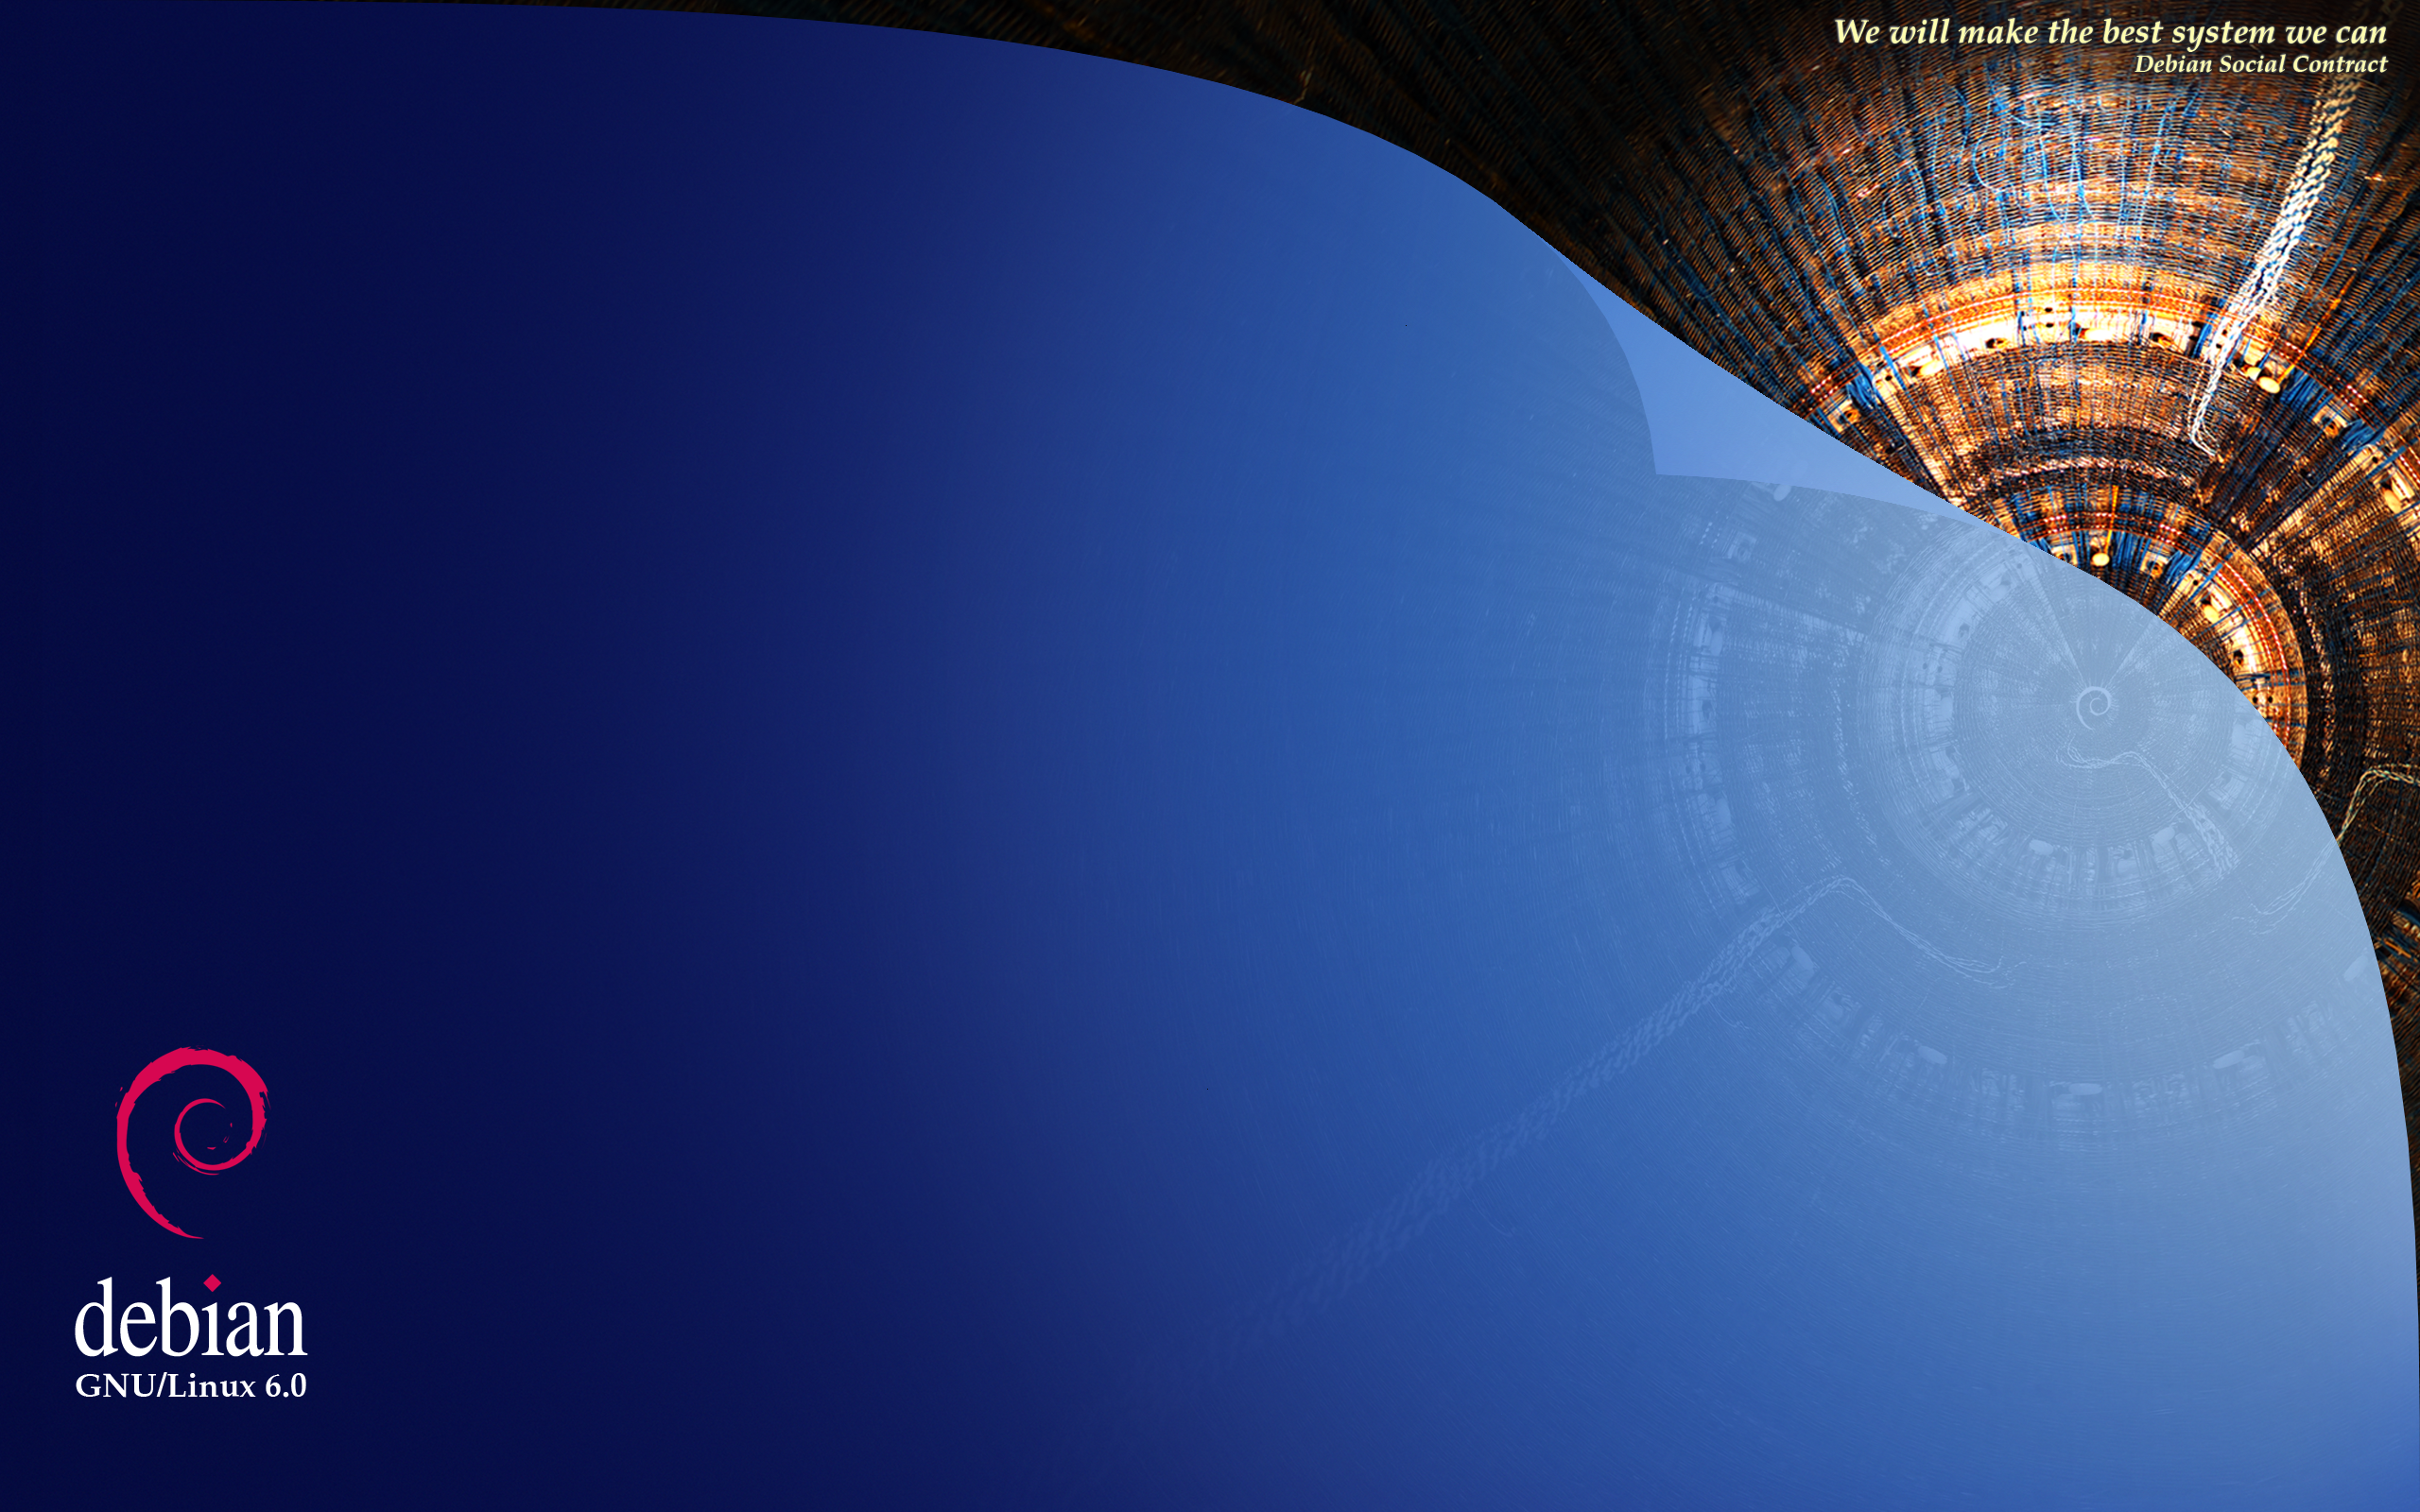 lisp-machine-blue-gdm3-2560x1600.png